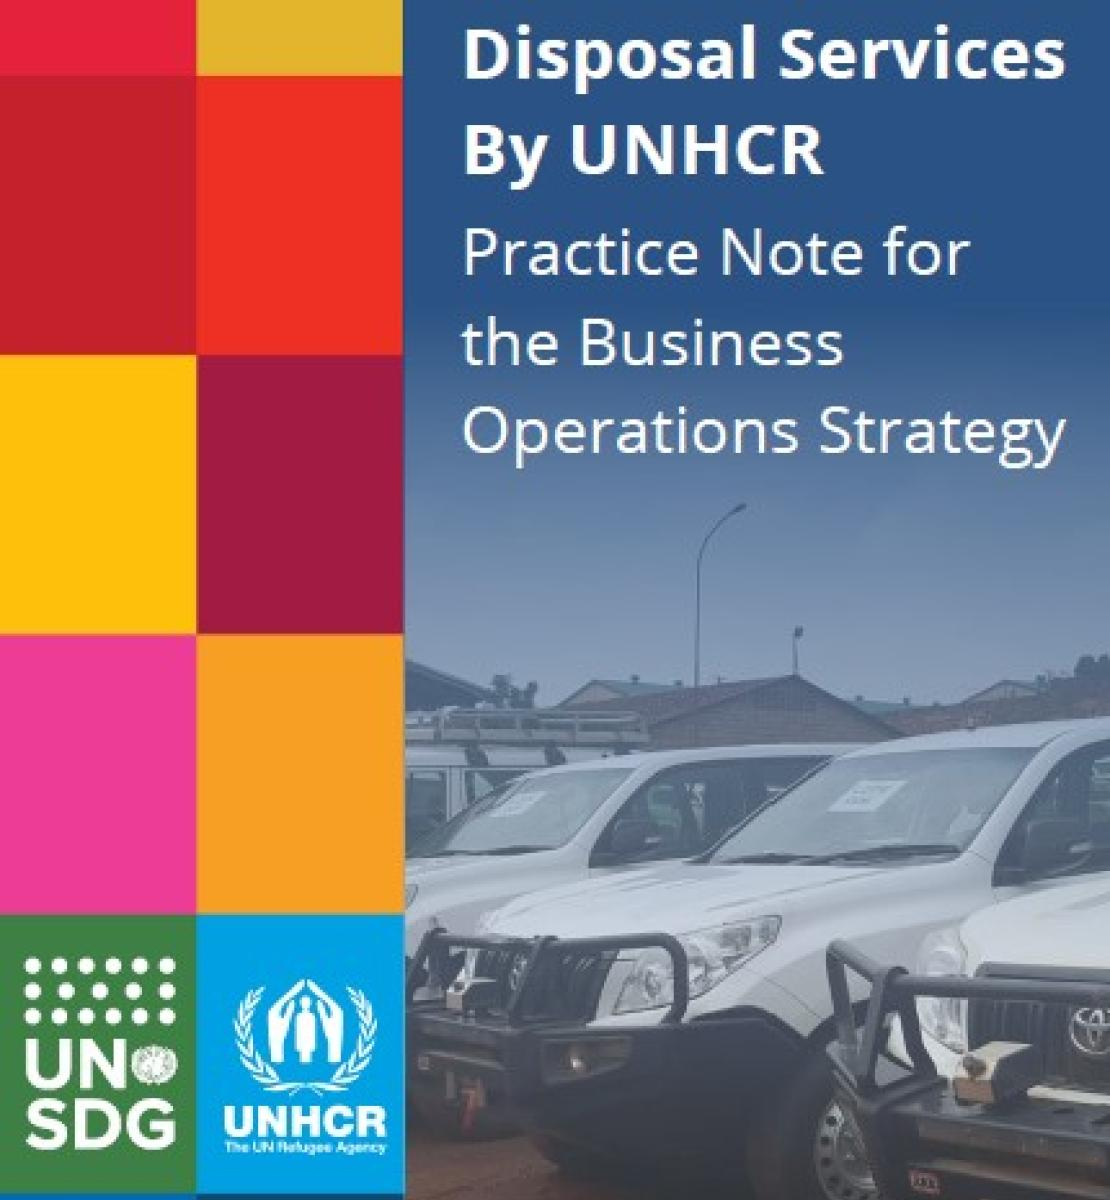 UN cars parked outdoors. Title of the Practice Note UN Common Disposable Services